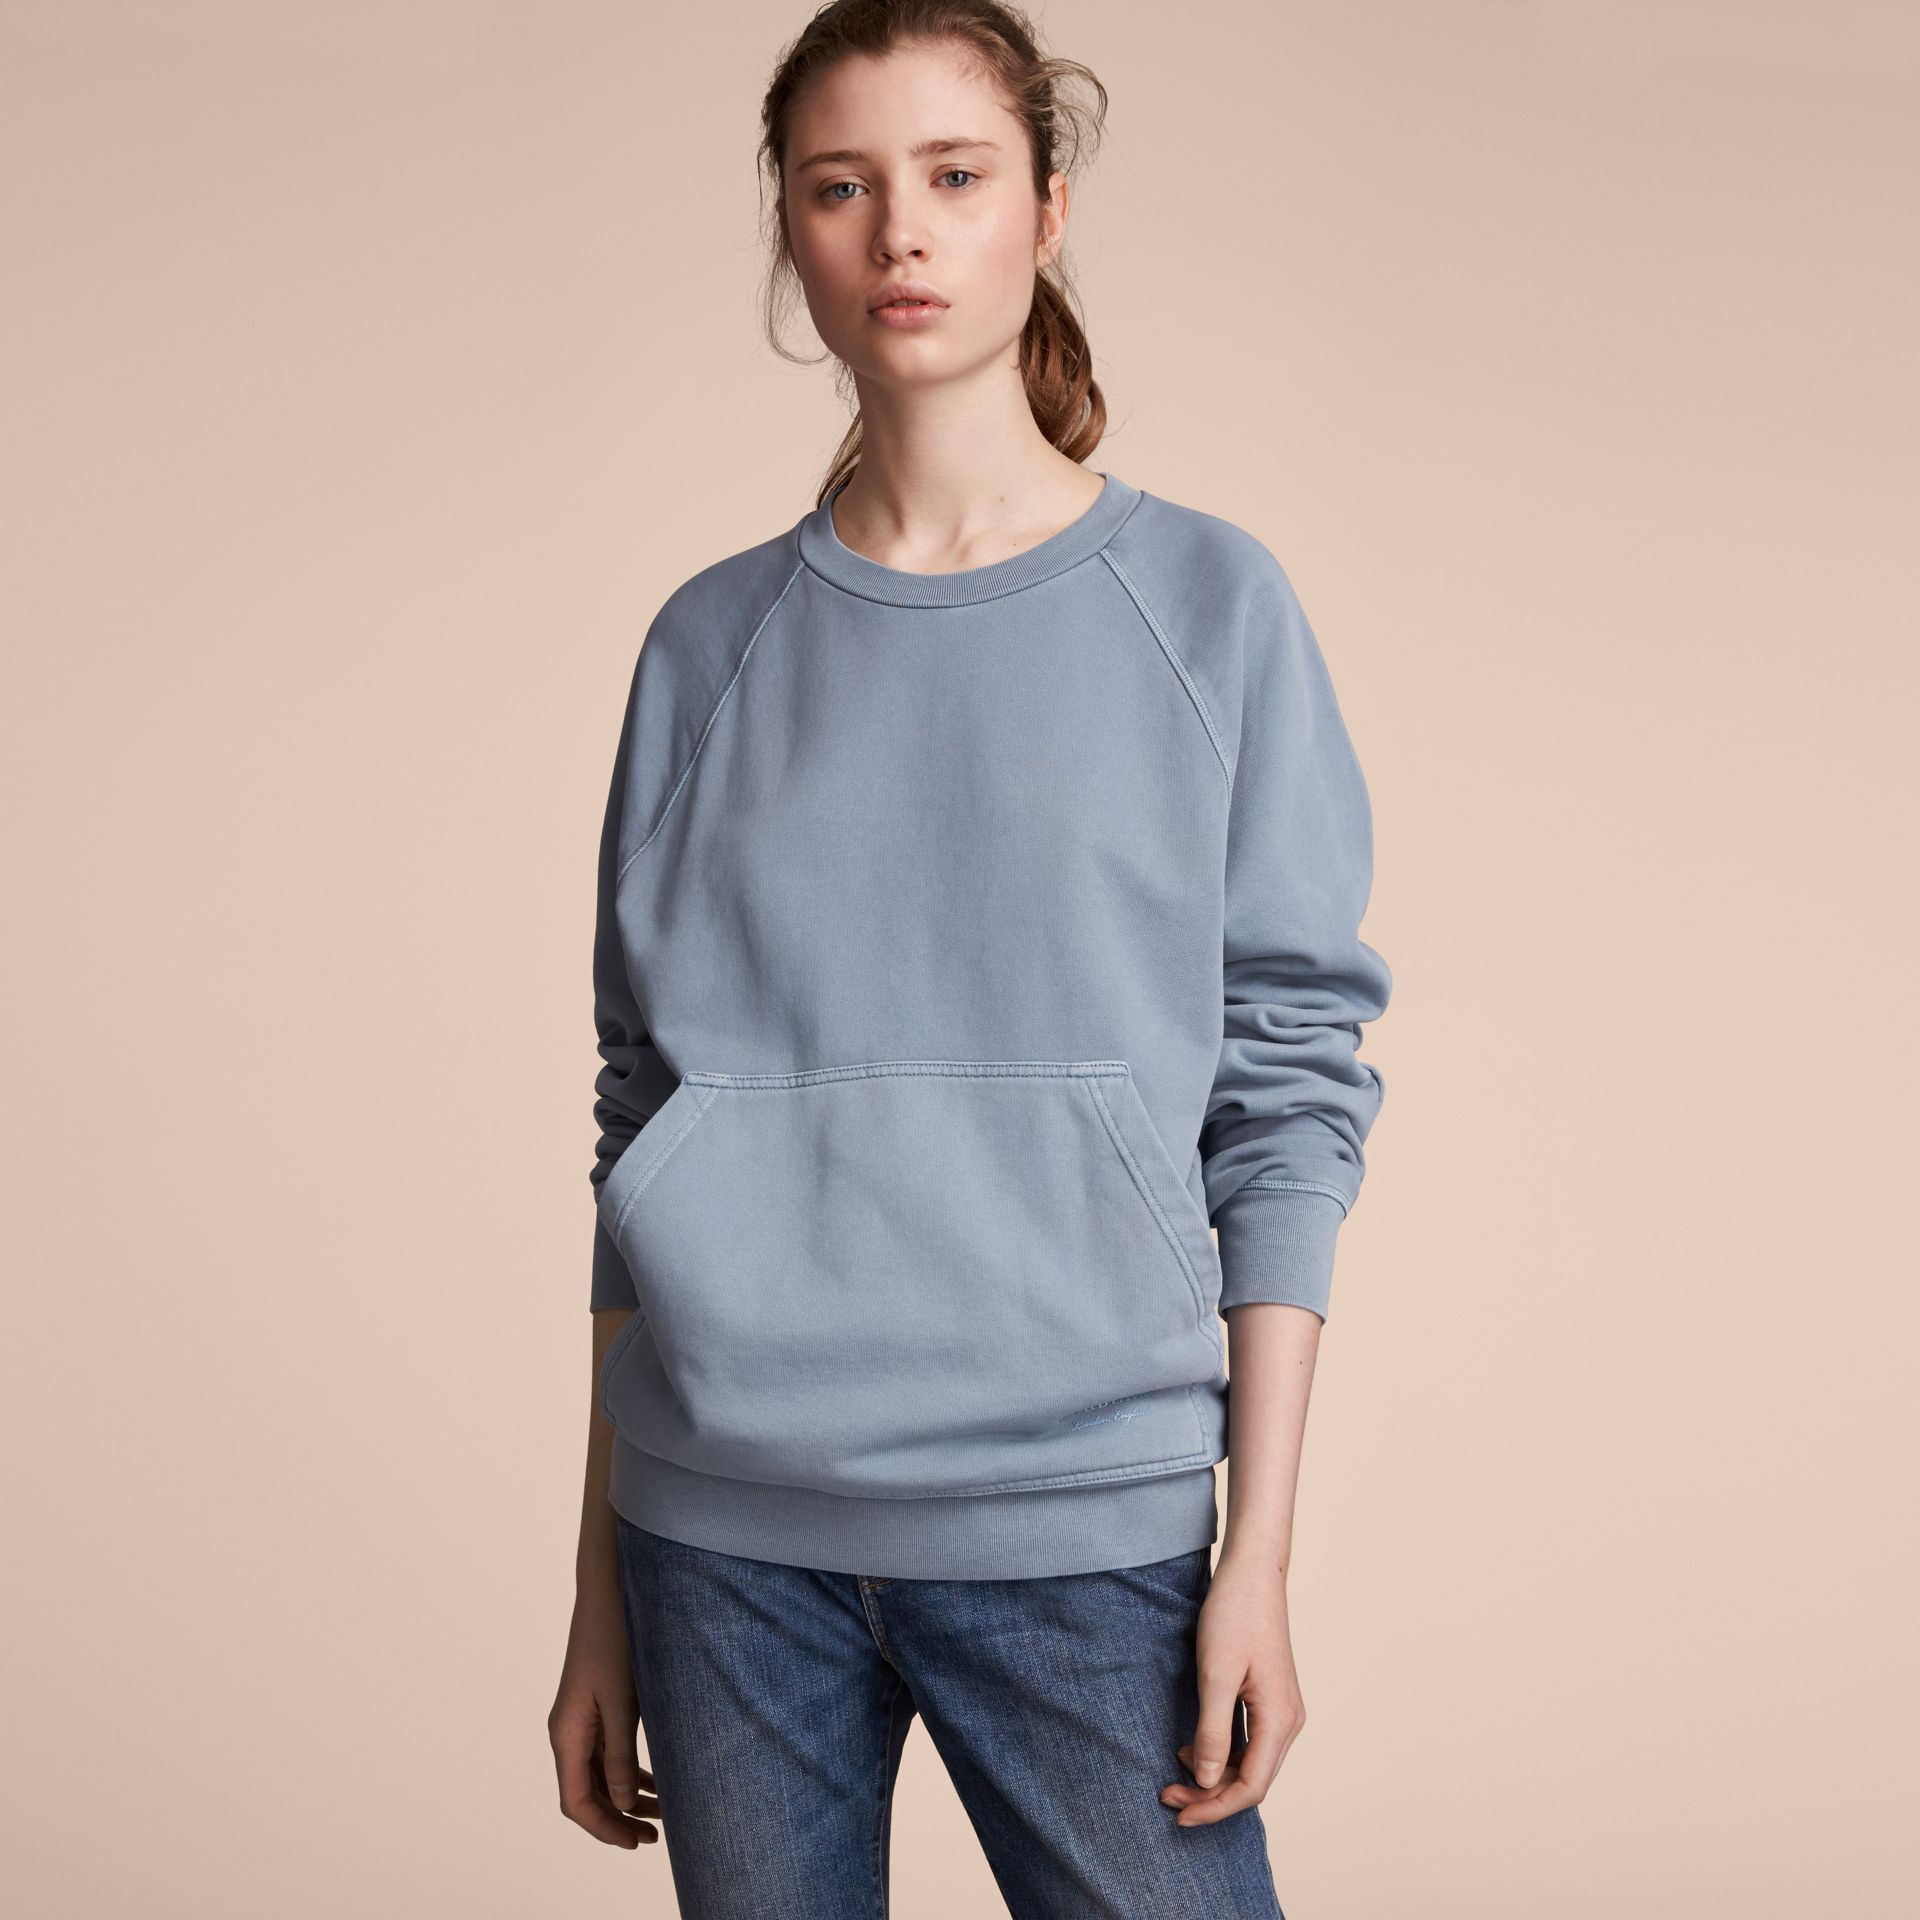 Unisex Pigment-dyed Cotton Oversize Sweatshirt in Dusty Blue - Women | Burberry - gallery image 5